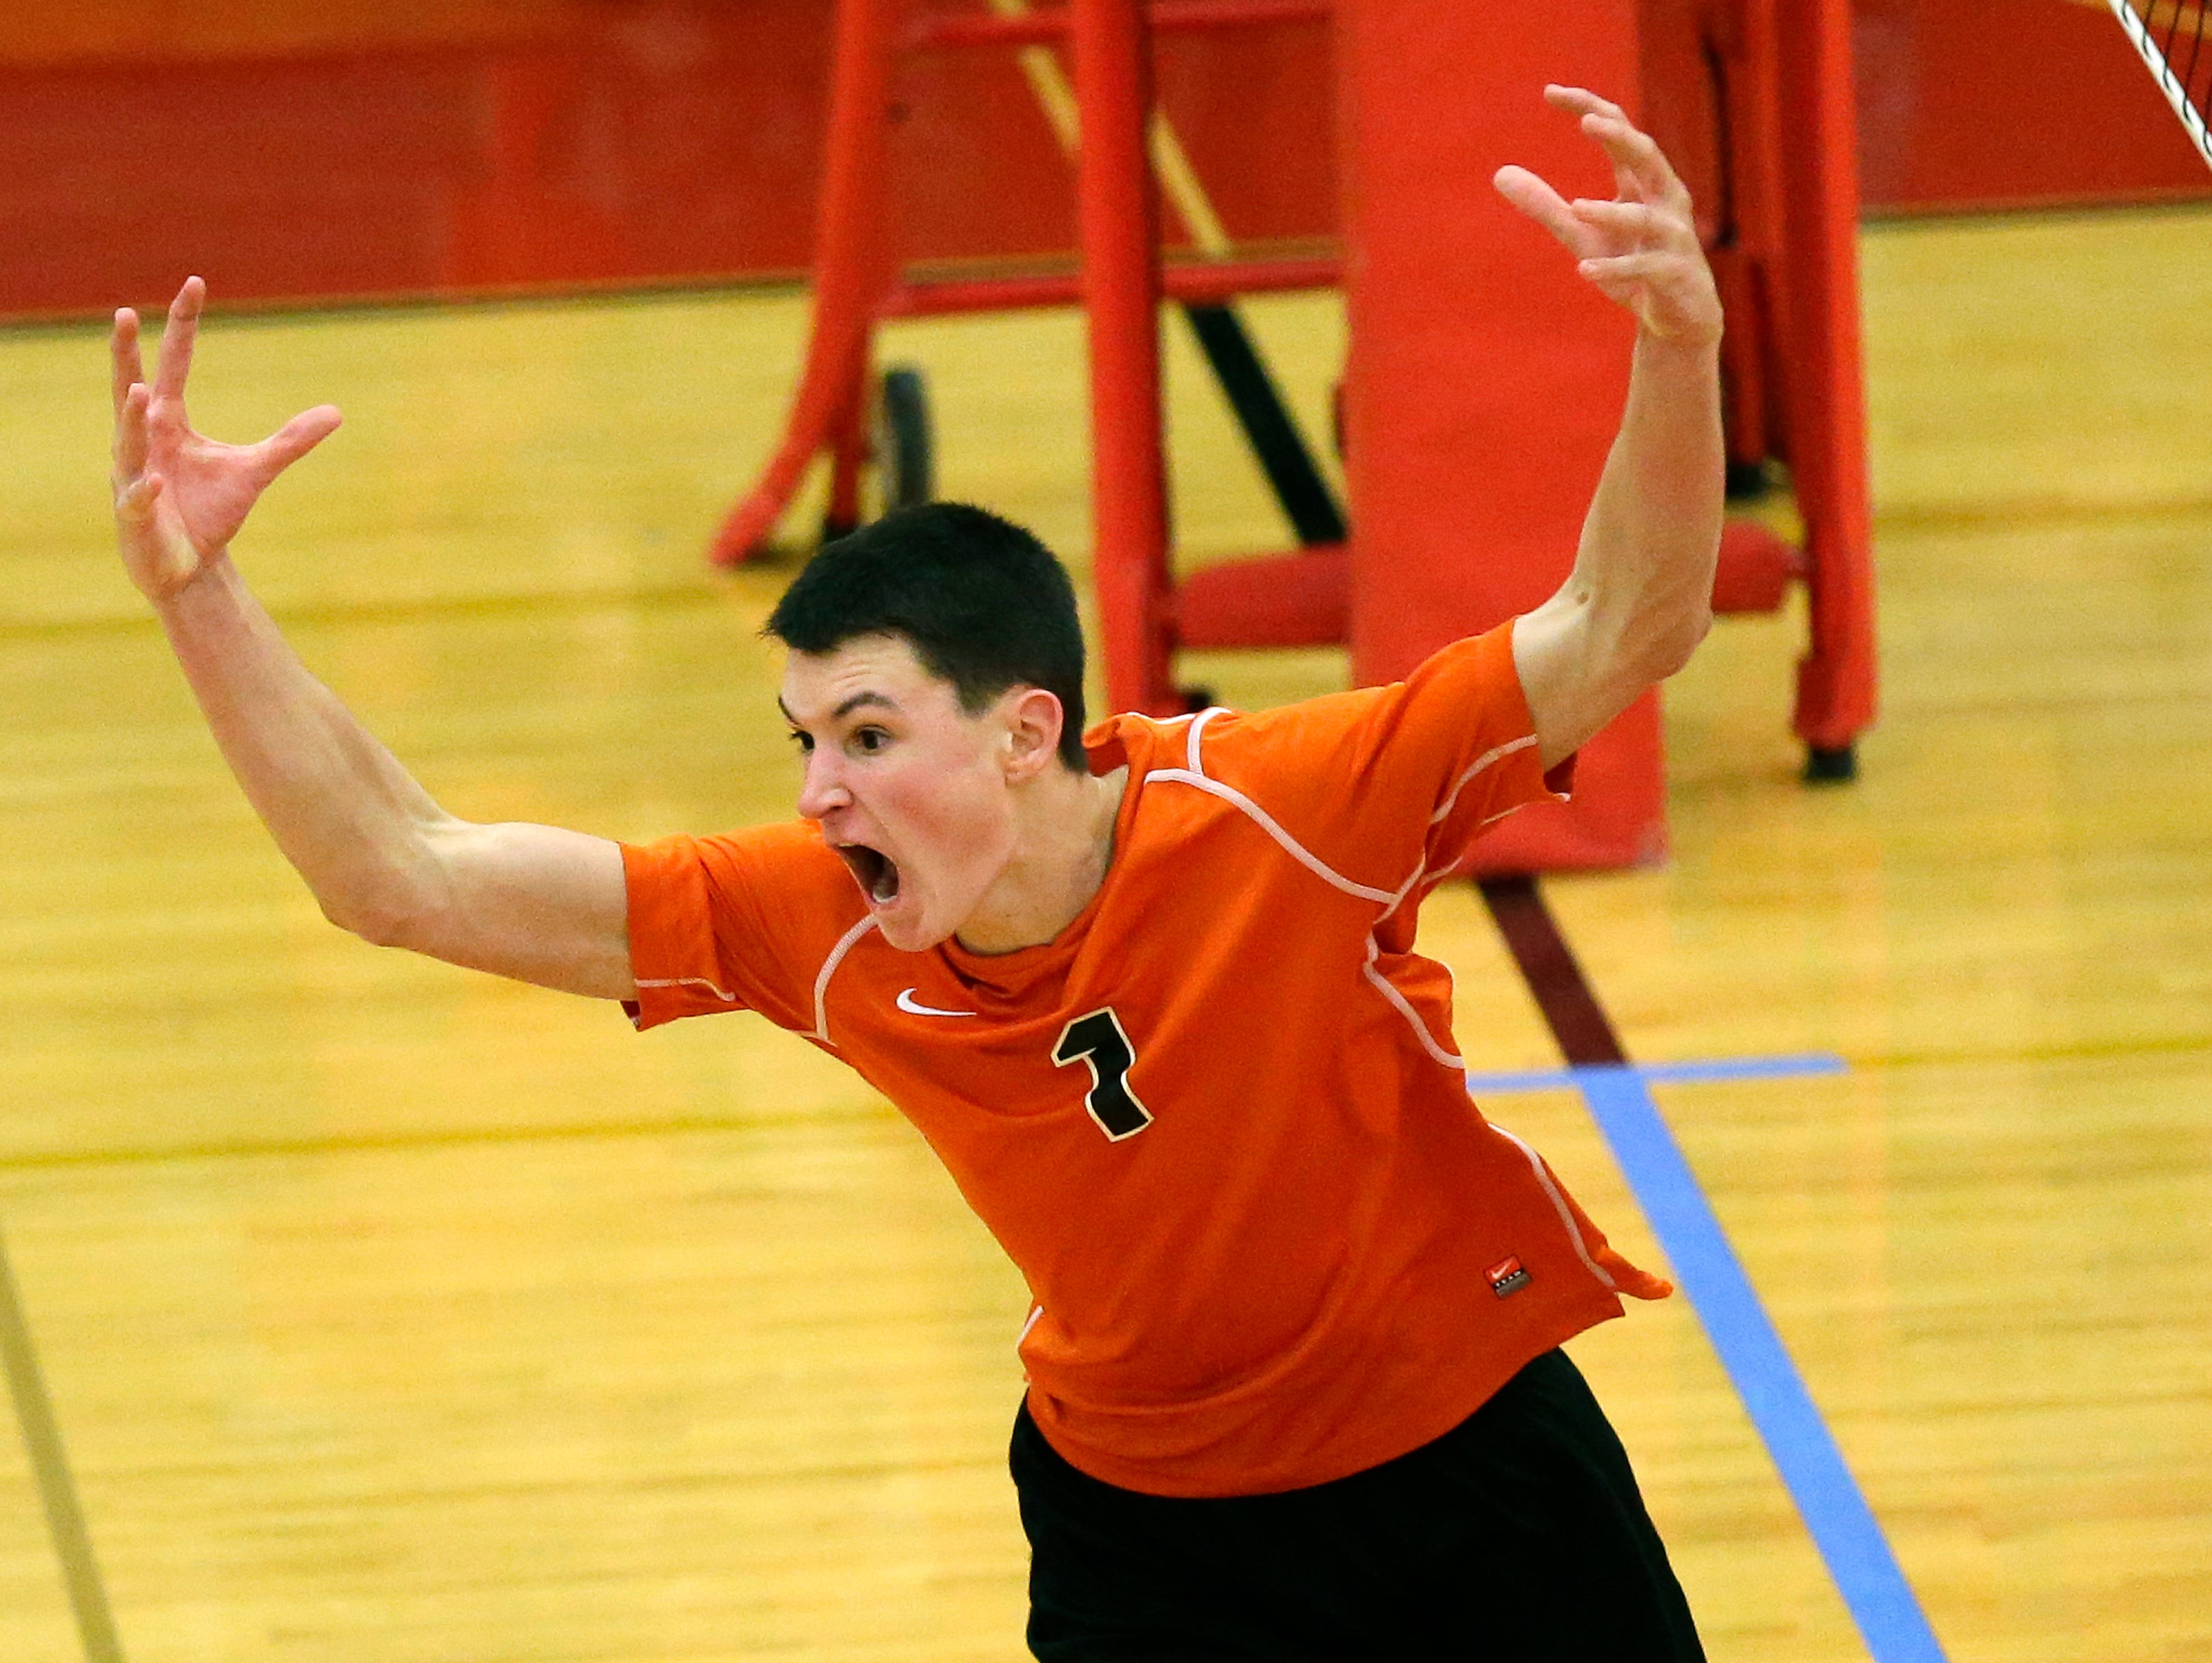 Kaukauna High School's Bailey McDaniel celebrates after defeating Appleton North High School during their WIAA boys volleyball sectional championship match Thursday at Kimberly High School.